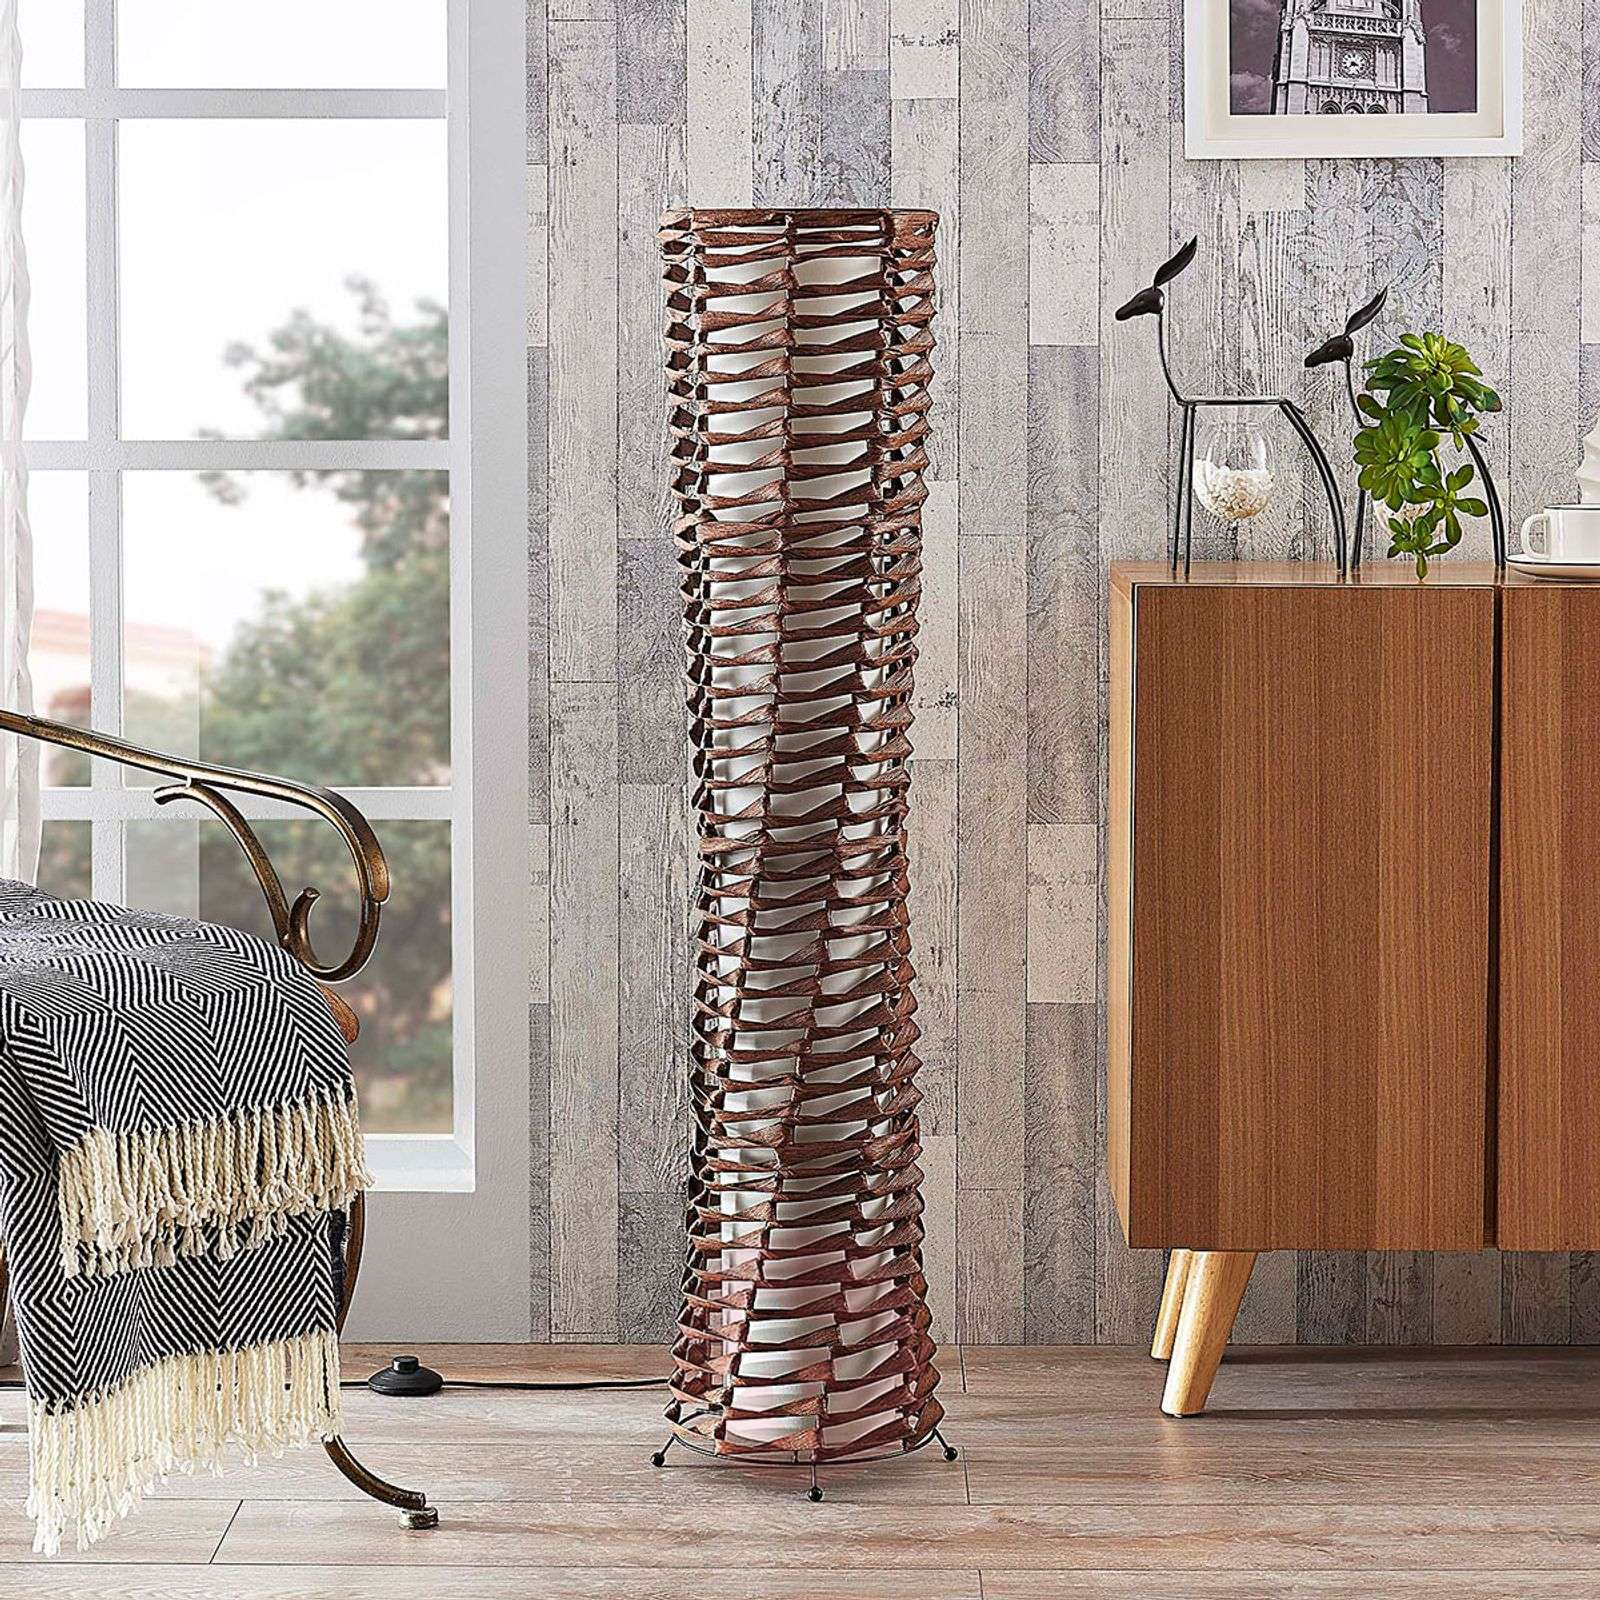 Decorative living room floor lamp Joas in brown